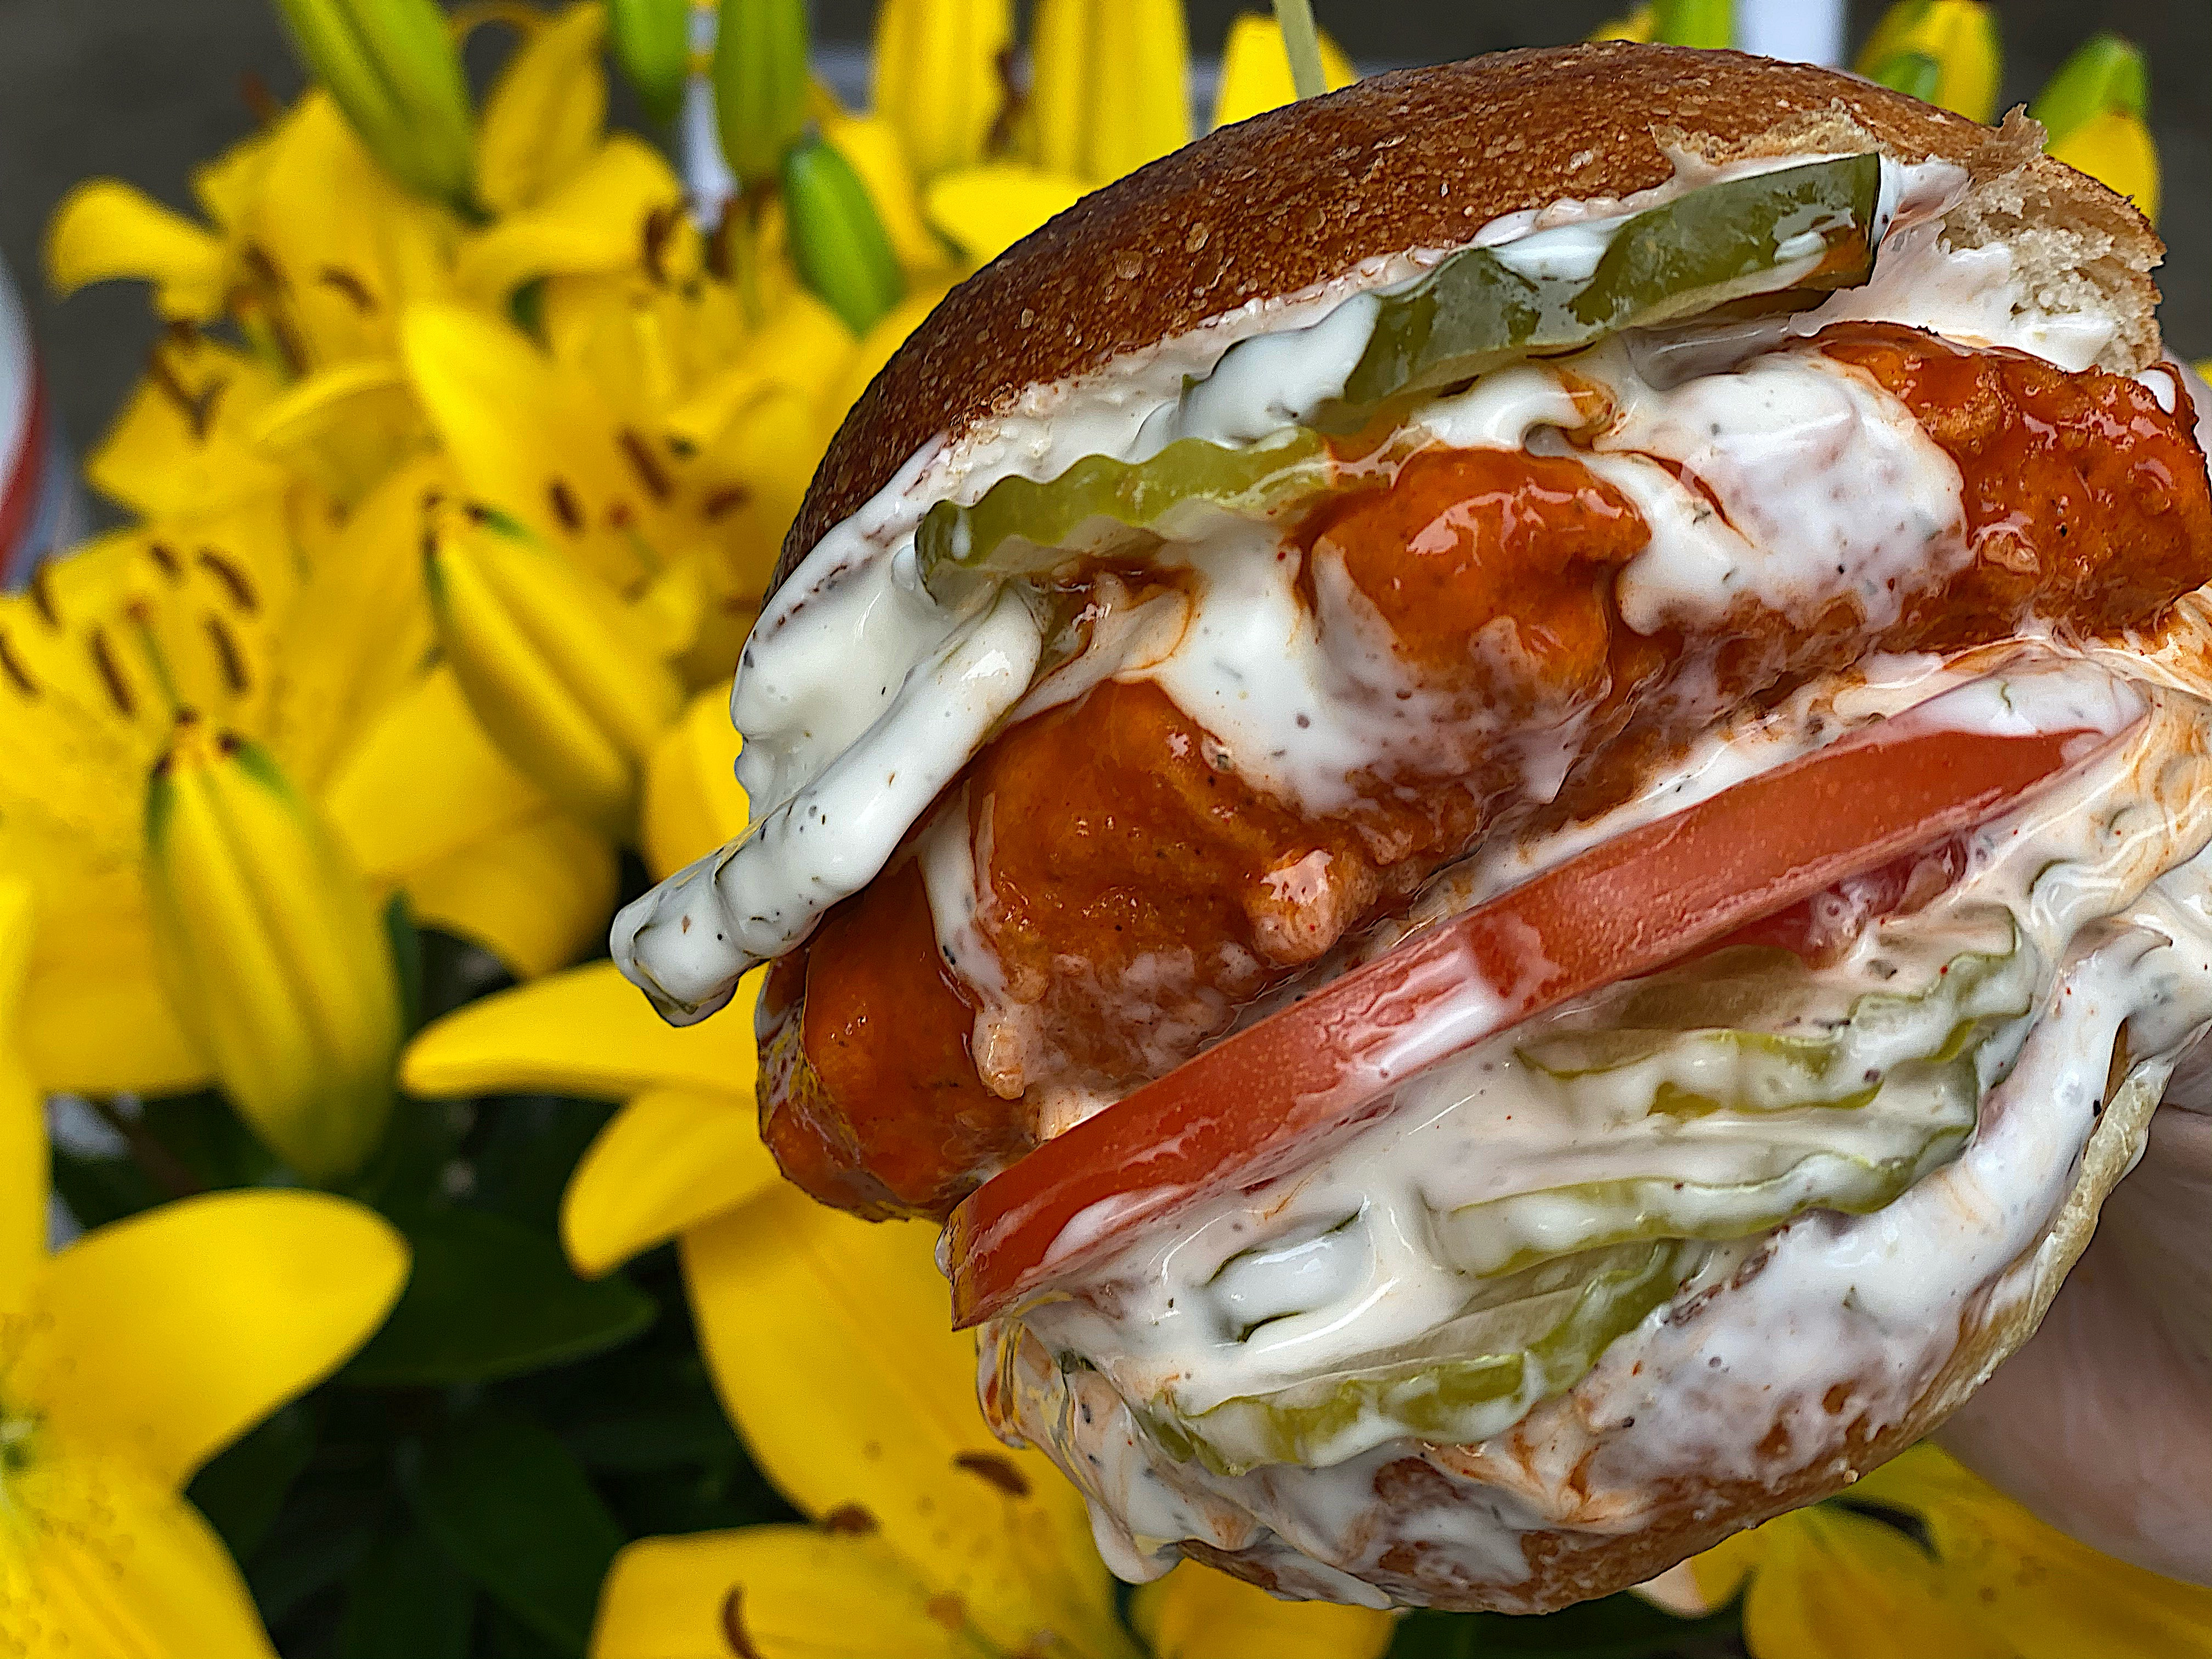 A hand holds a vegan, Follow Your Heart bleu-cheese-smothered buffalo chicken sandwich, with tomatoes and pickles peeking out by the chicken. The hand holds the sandwich in front of yellow lilies.